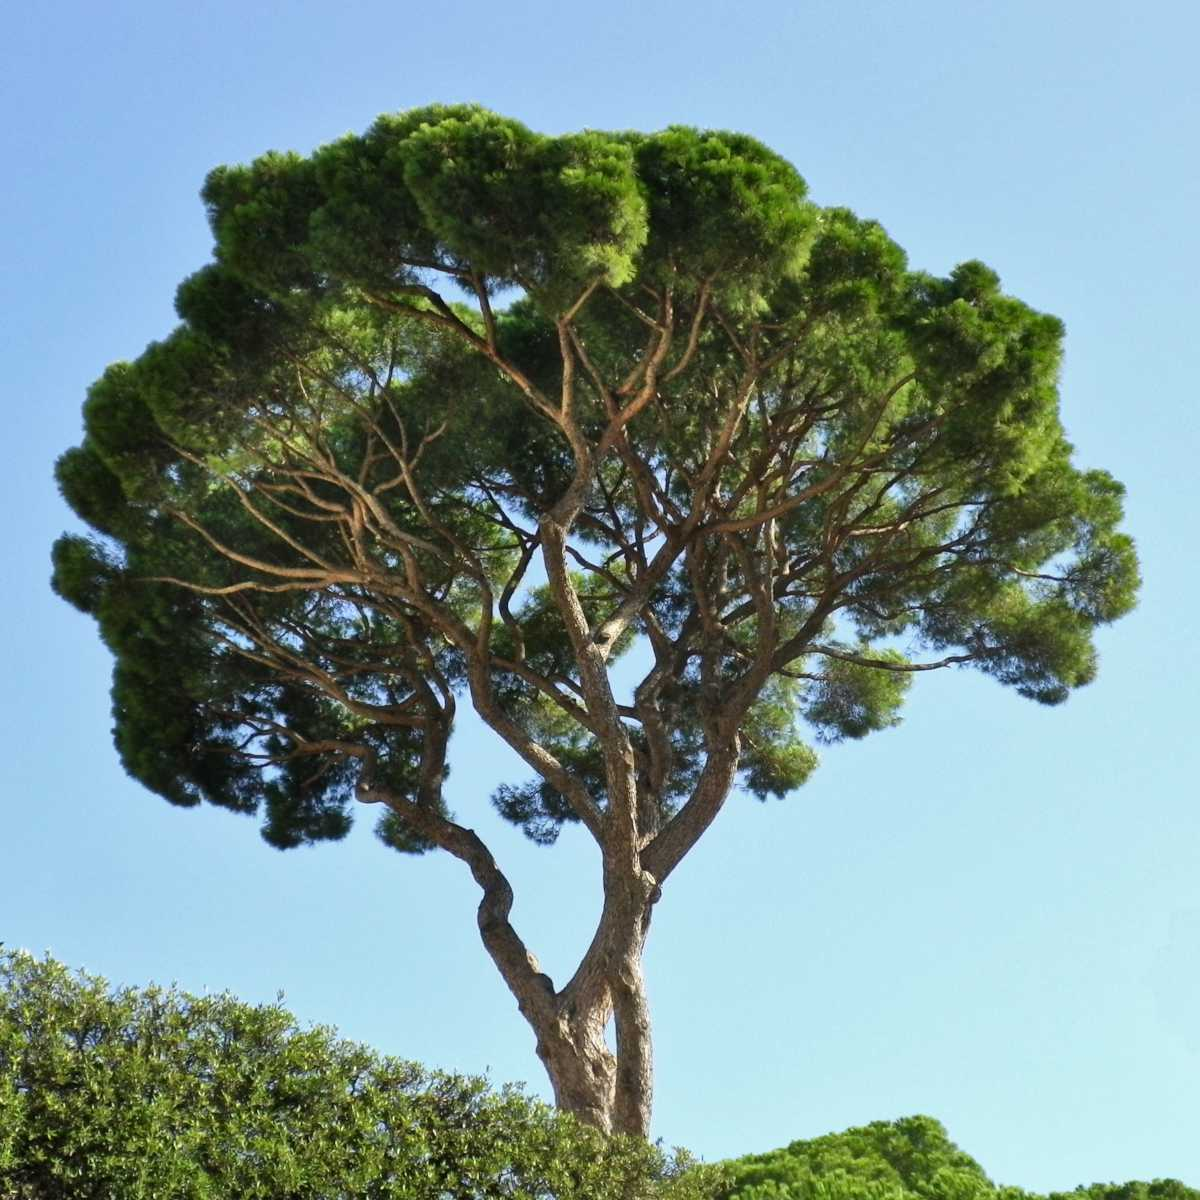 Stone pine tree seen from below